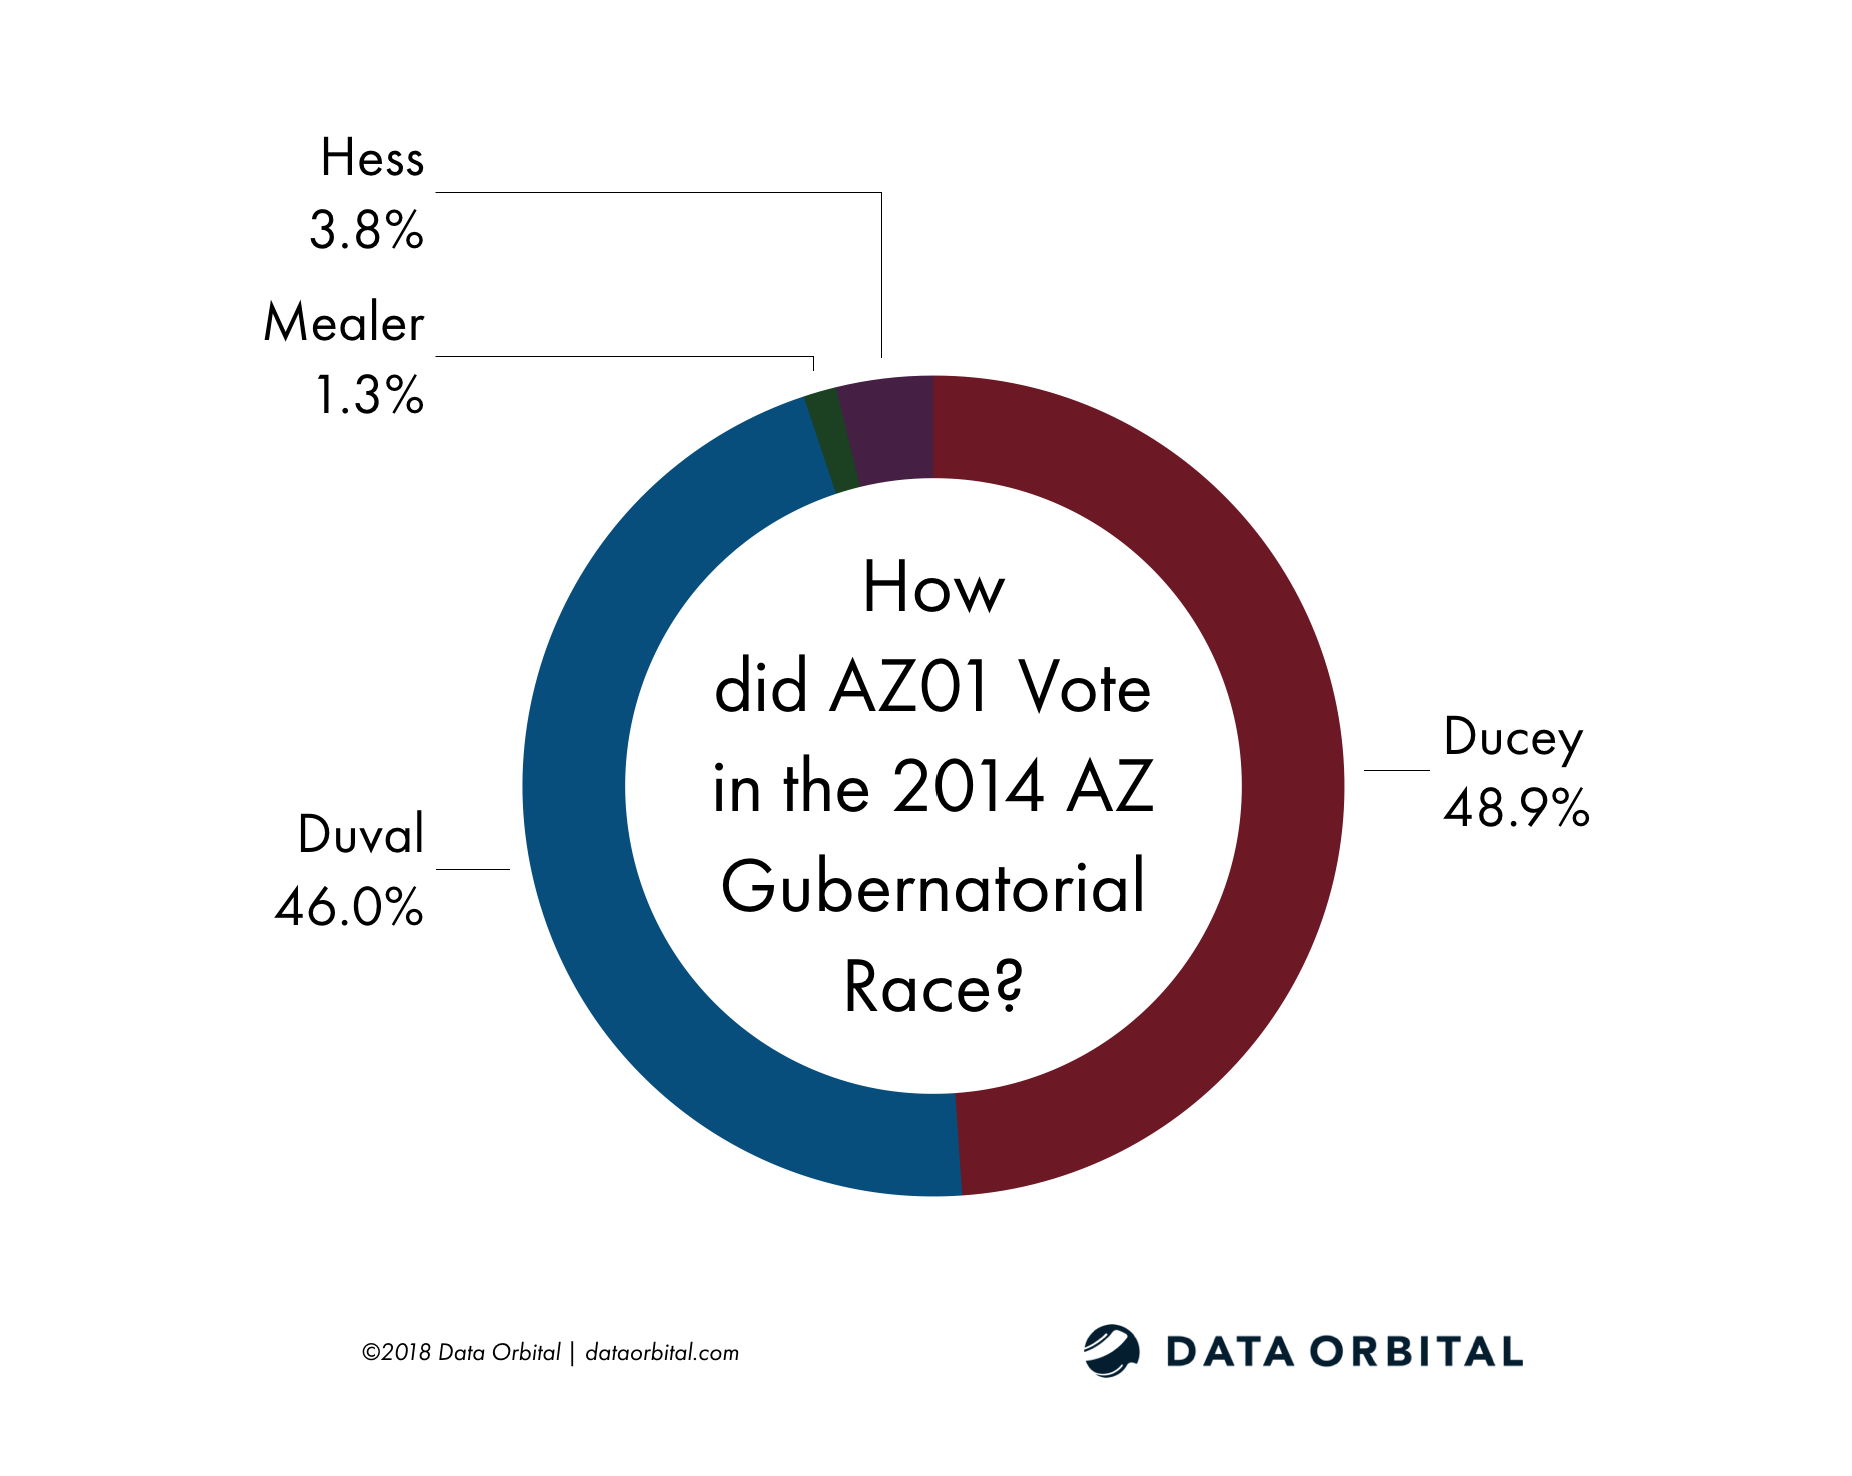 AZ01 District Profile 2014 Gubernatorial Election How Did They Vote?